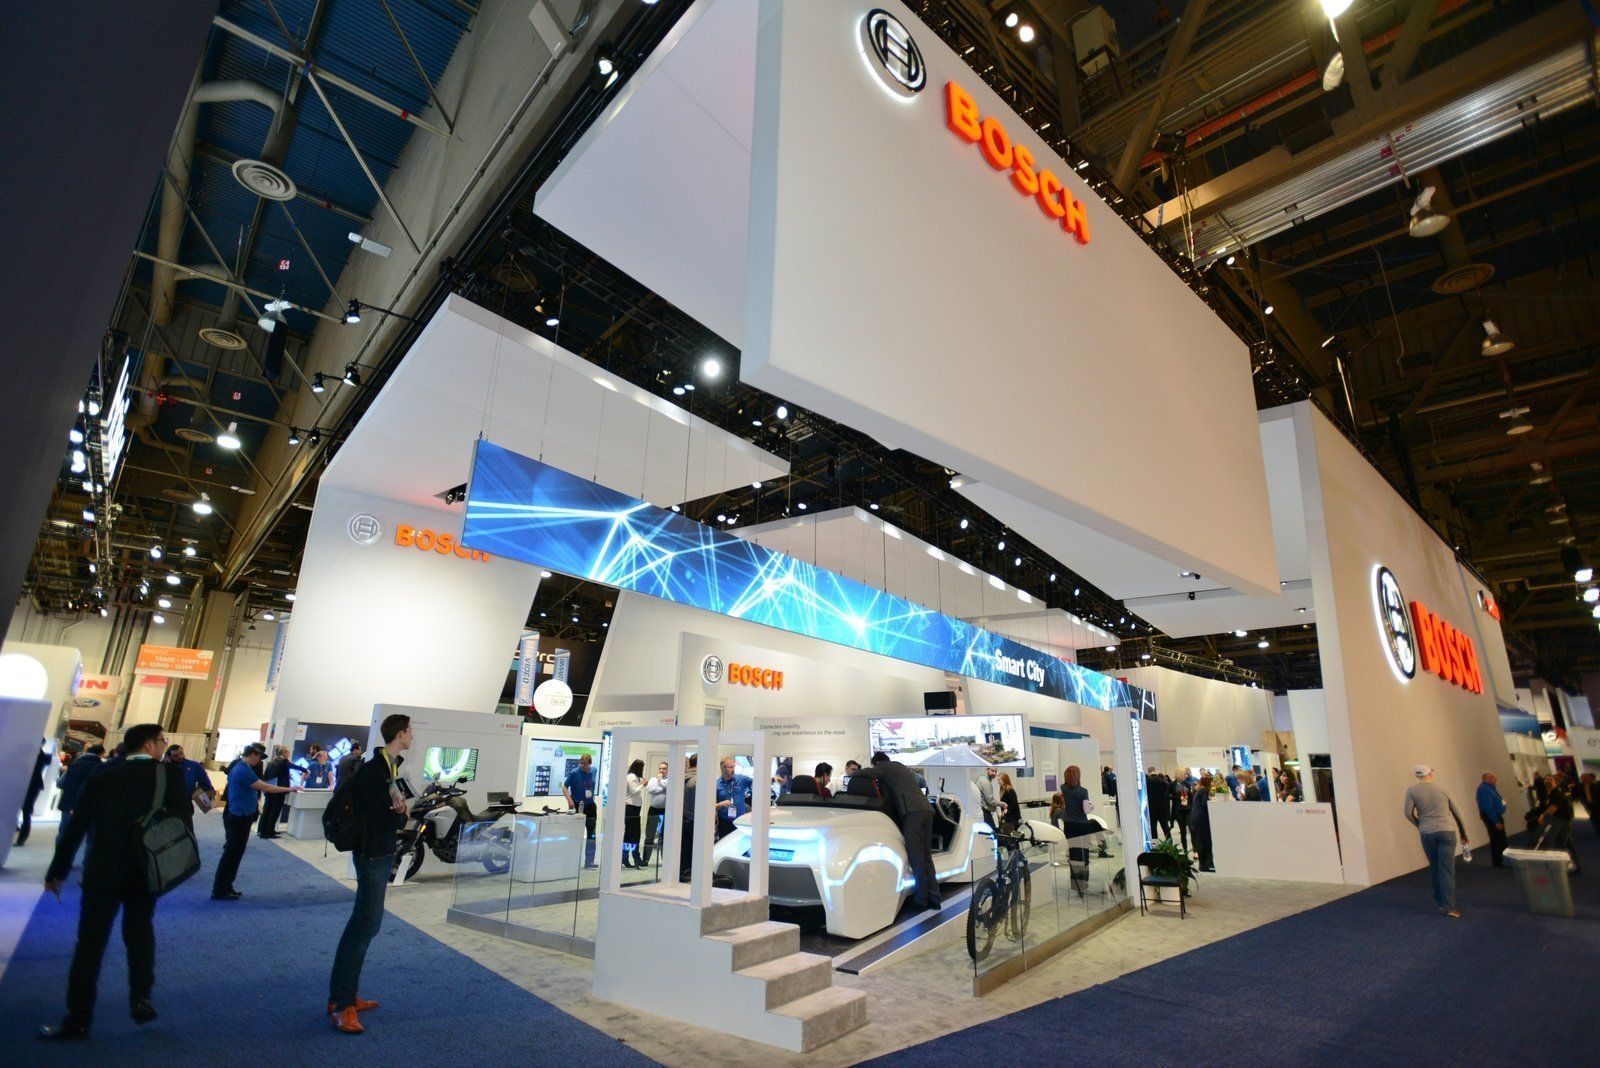 Exhibition Booth Assistant : Iot ces bosch focuses on intelligent assistants